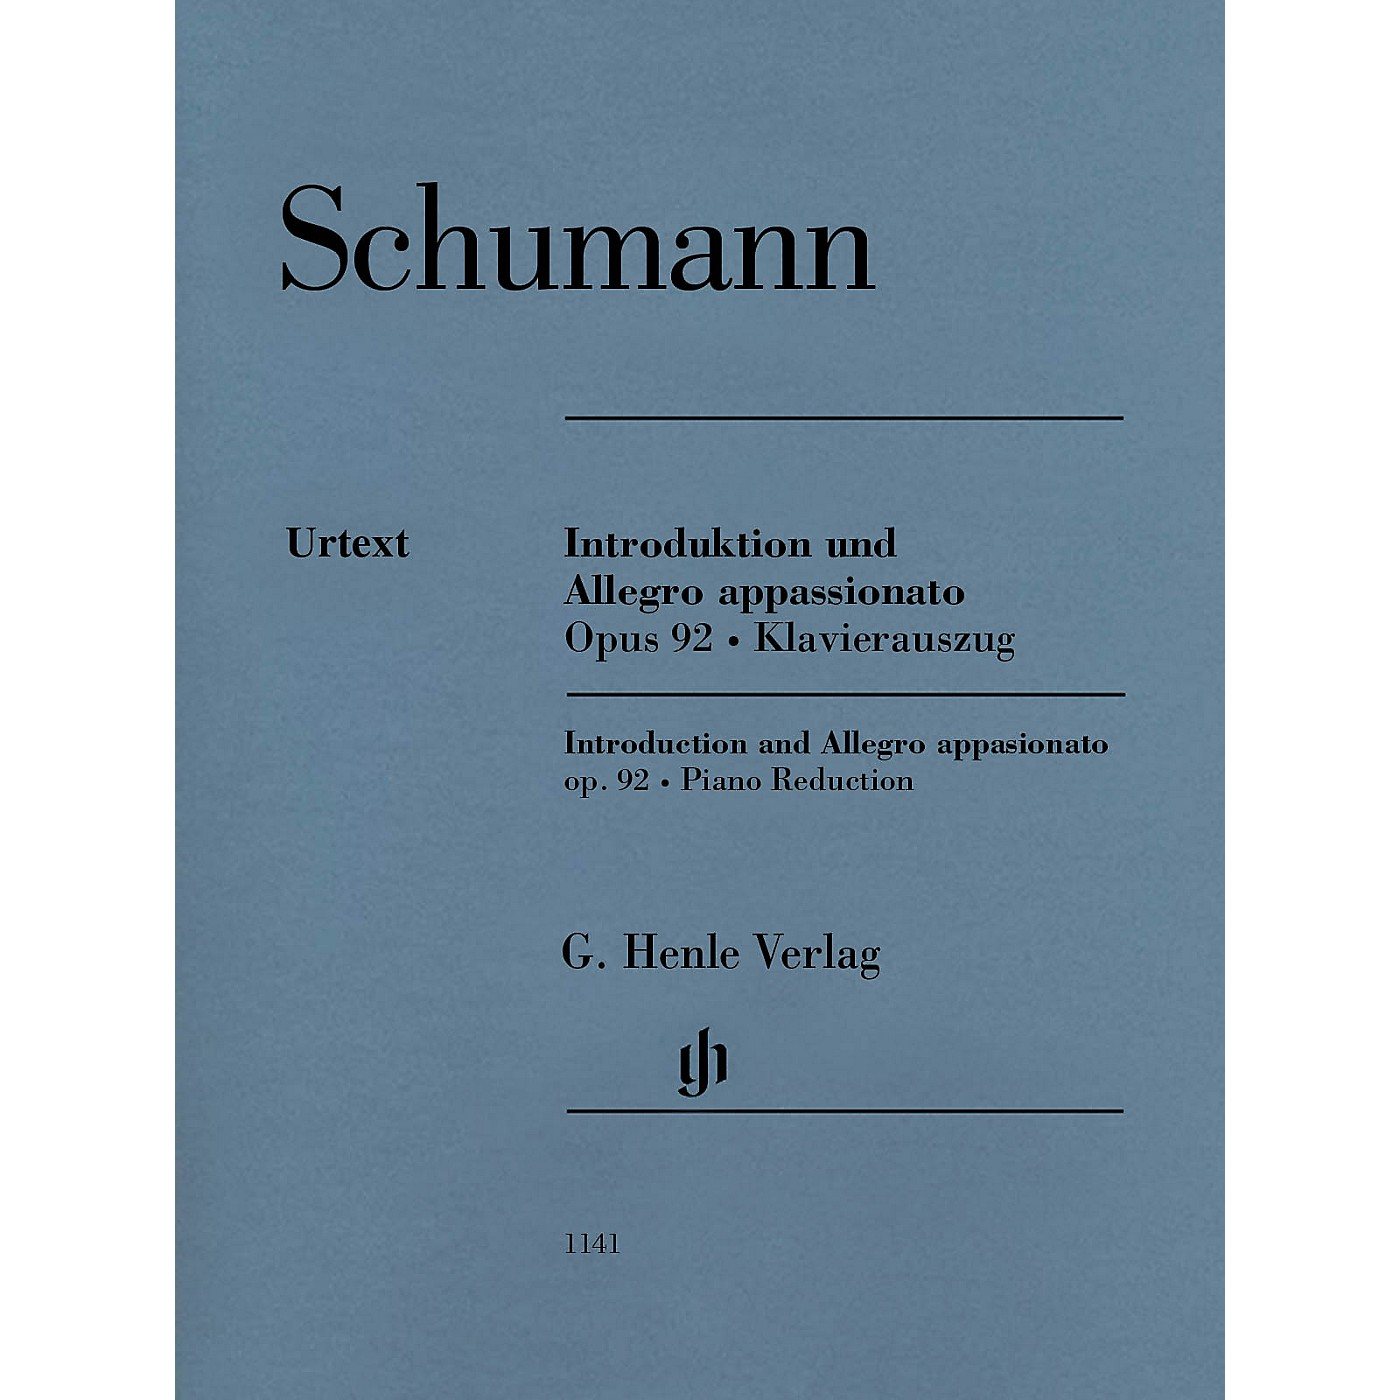 G. Henle Verlag Introduction and Allegro Appassionato for Piano and Orchestra, Op. 92 Henle Music Softcover by Schumann thumbnail